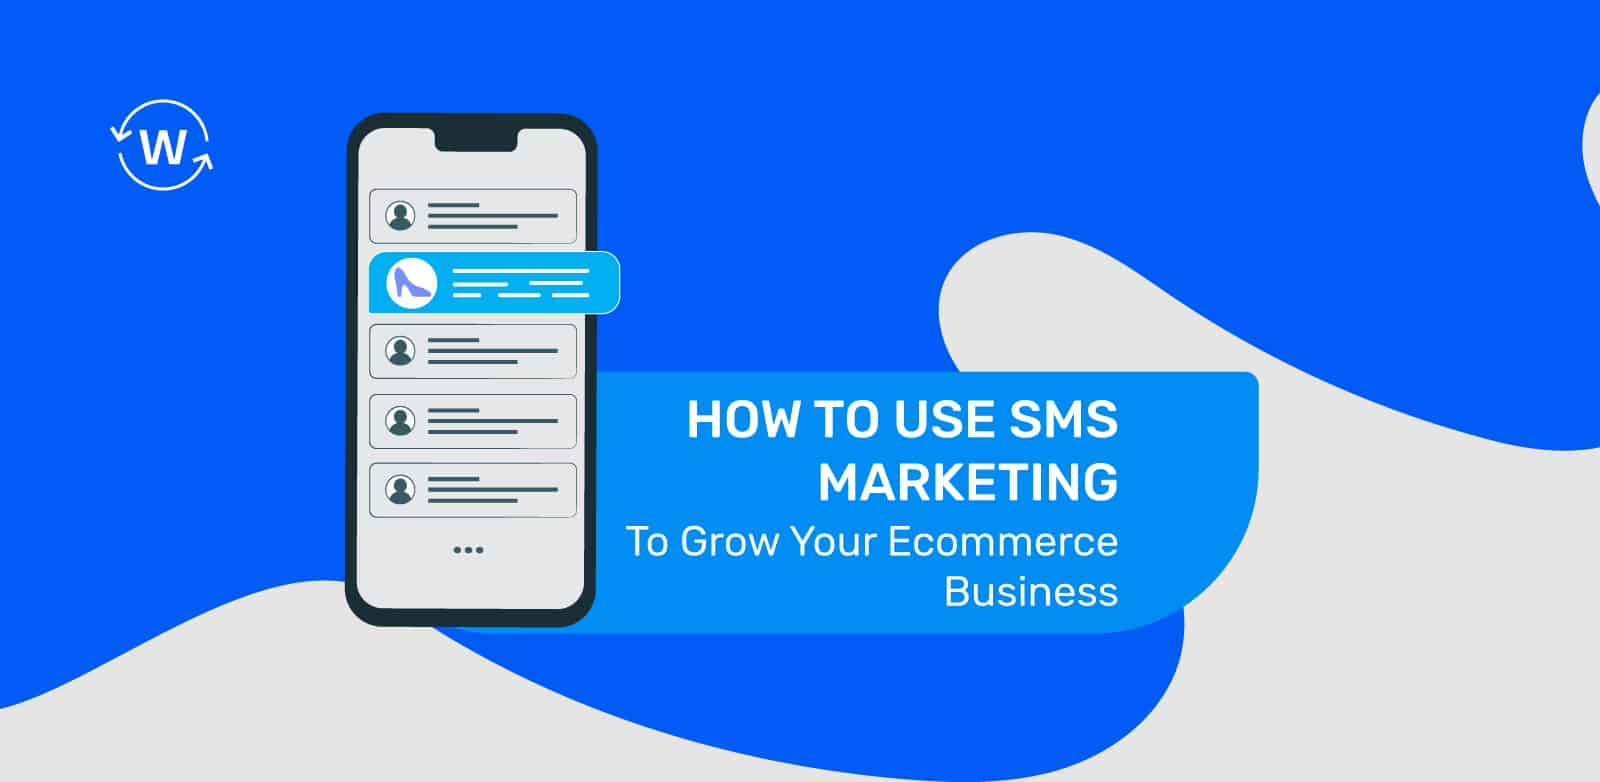 sms-marketing-800x391@2x